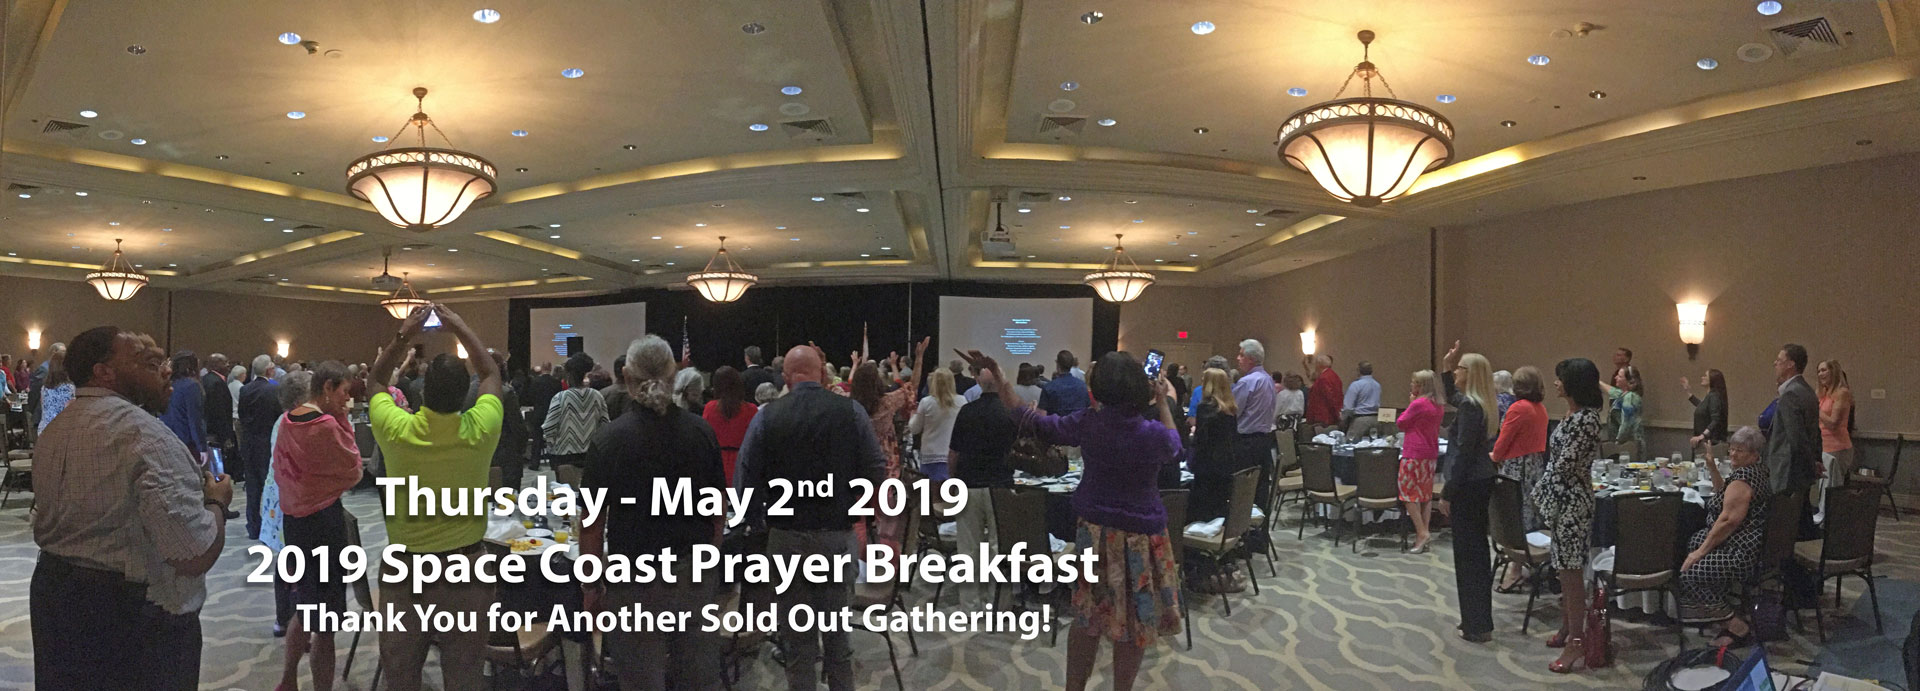 Space Coast Prayer Breakfast Sold Out